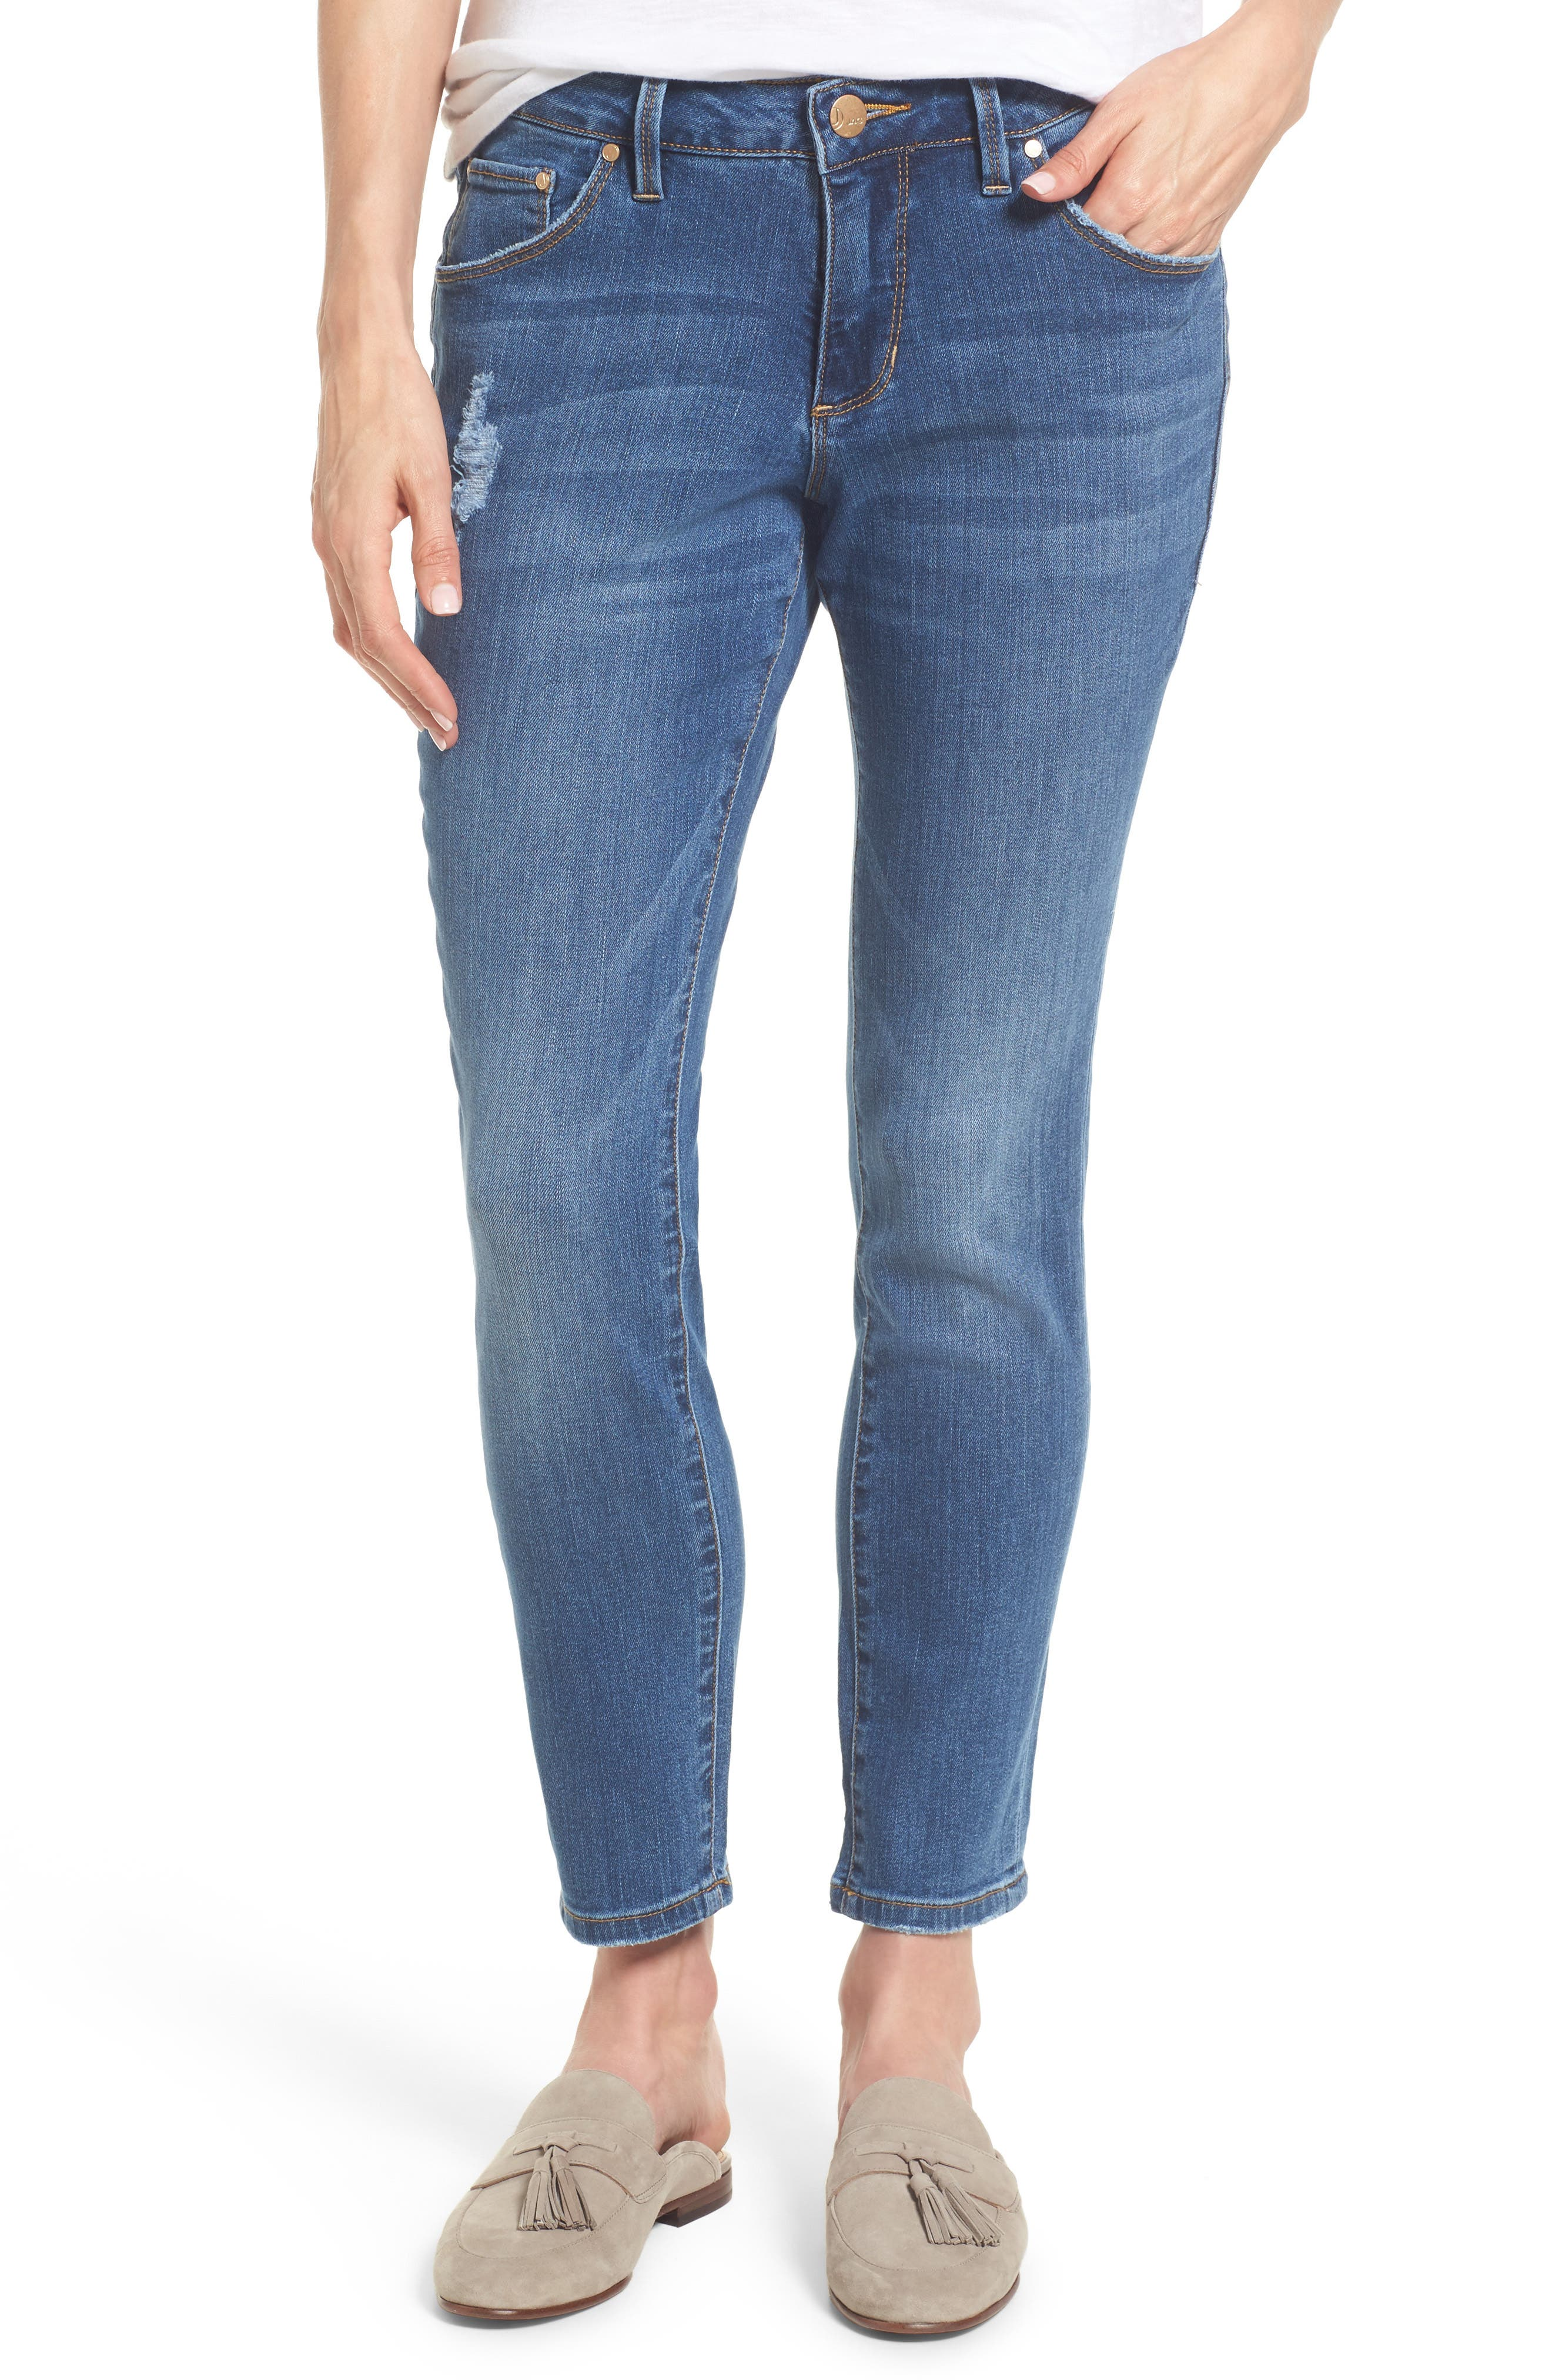 Mera Skinny Ankle Jeans,                             Main thumbnail 1, color,                             420